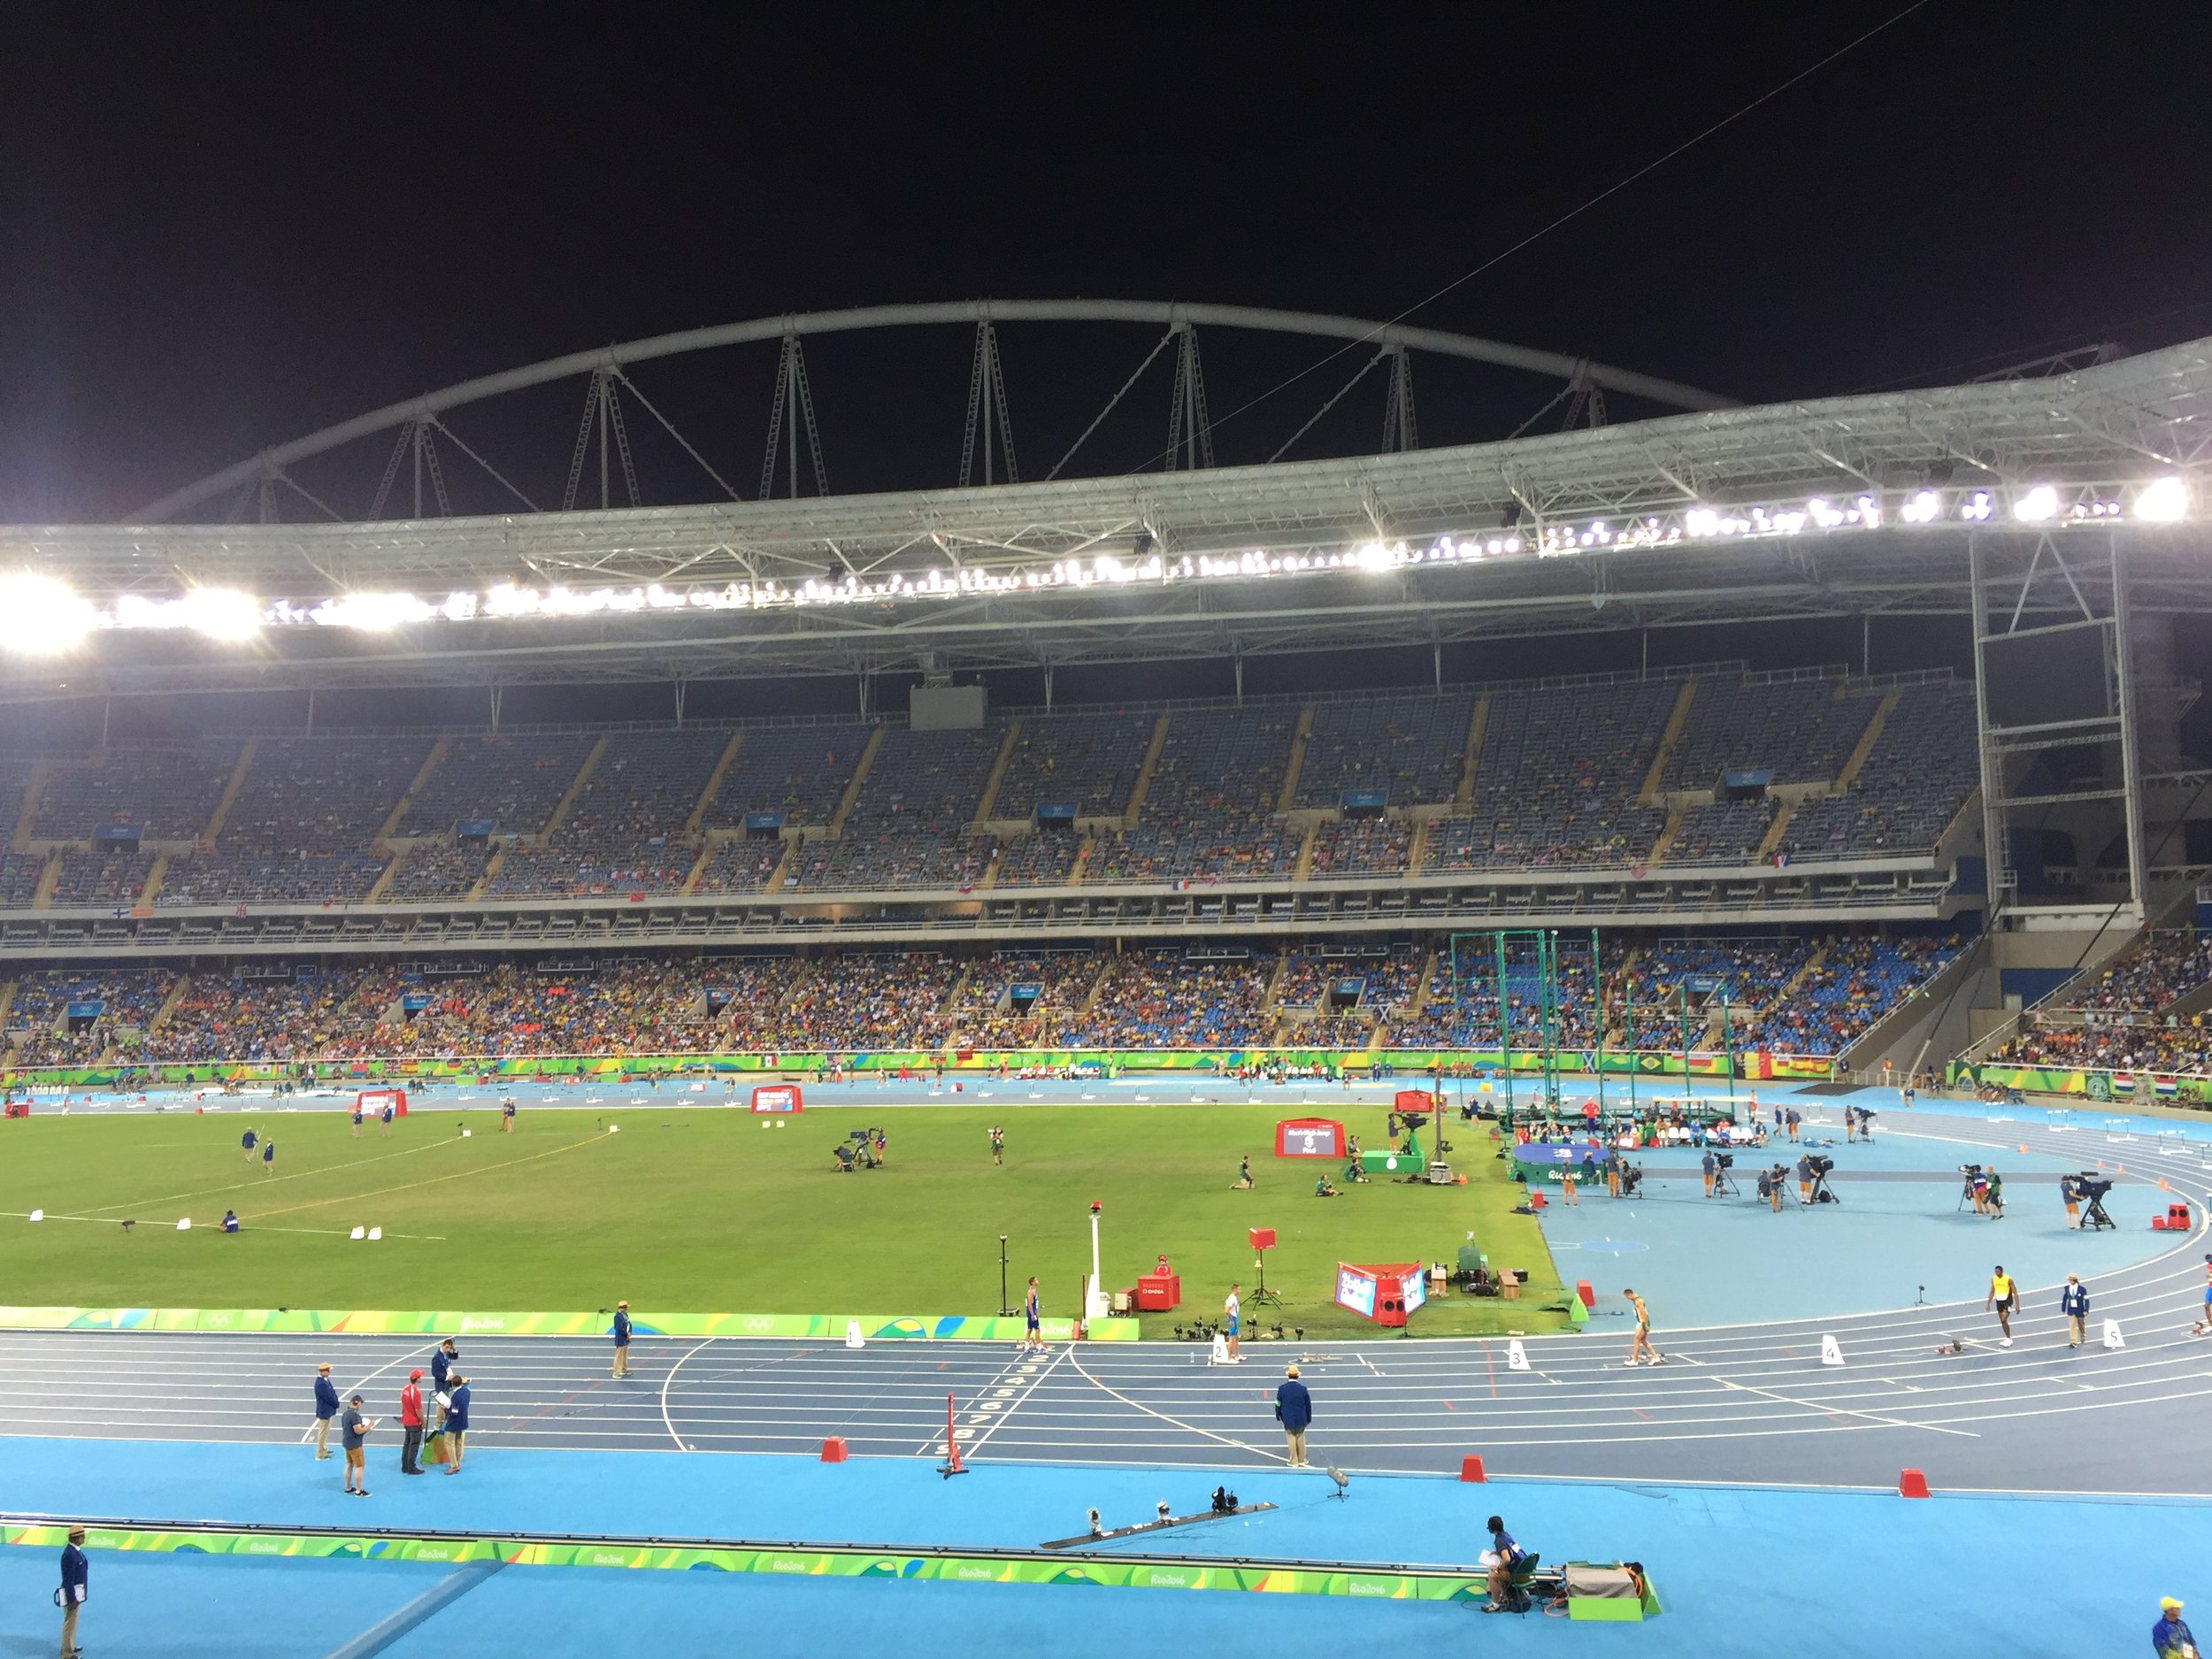 The 'crowd' in the stadium with just the women's 200 semifinals, women's 1500 final and men's 110 hurdle final to go